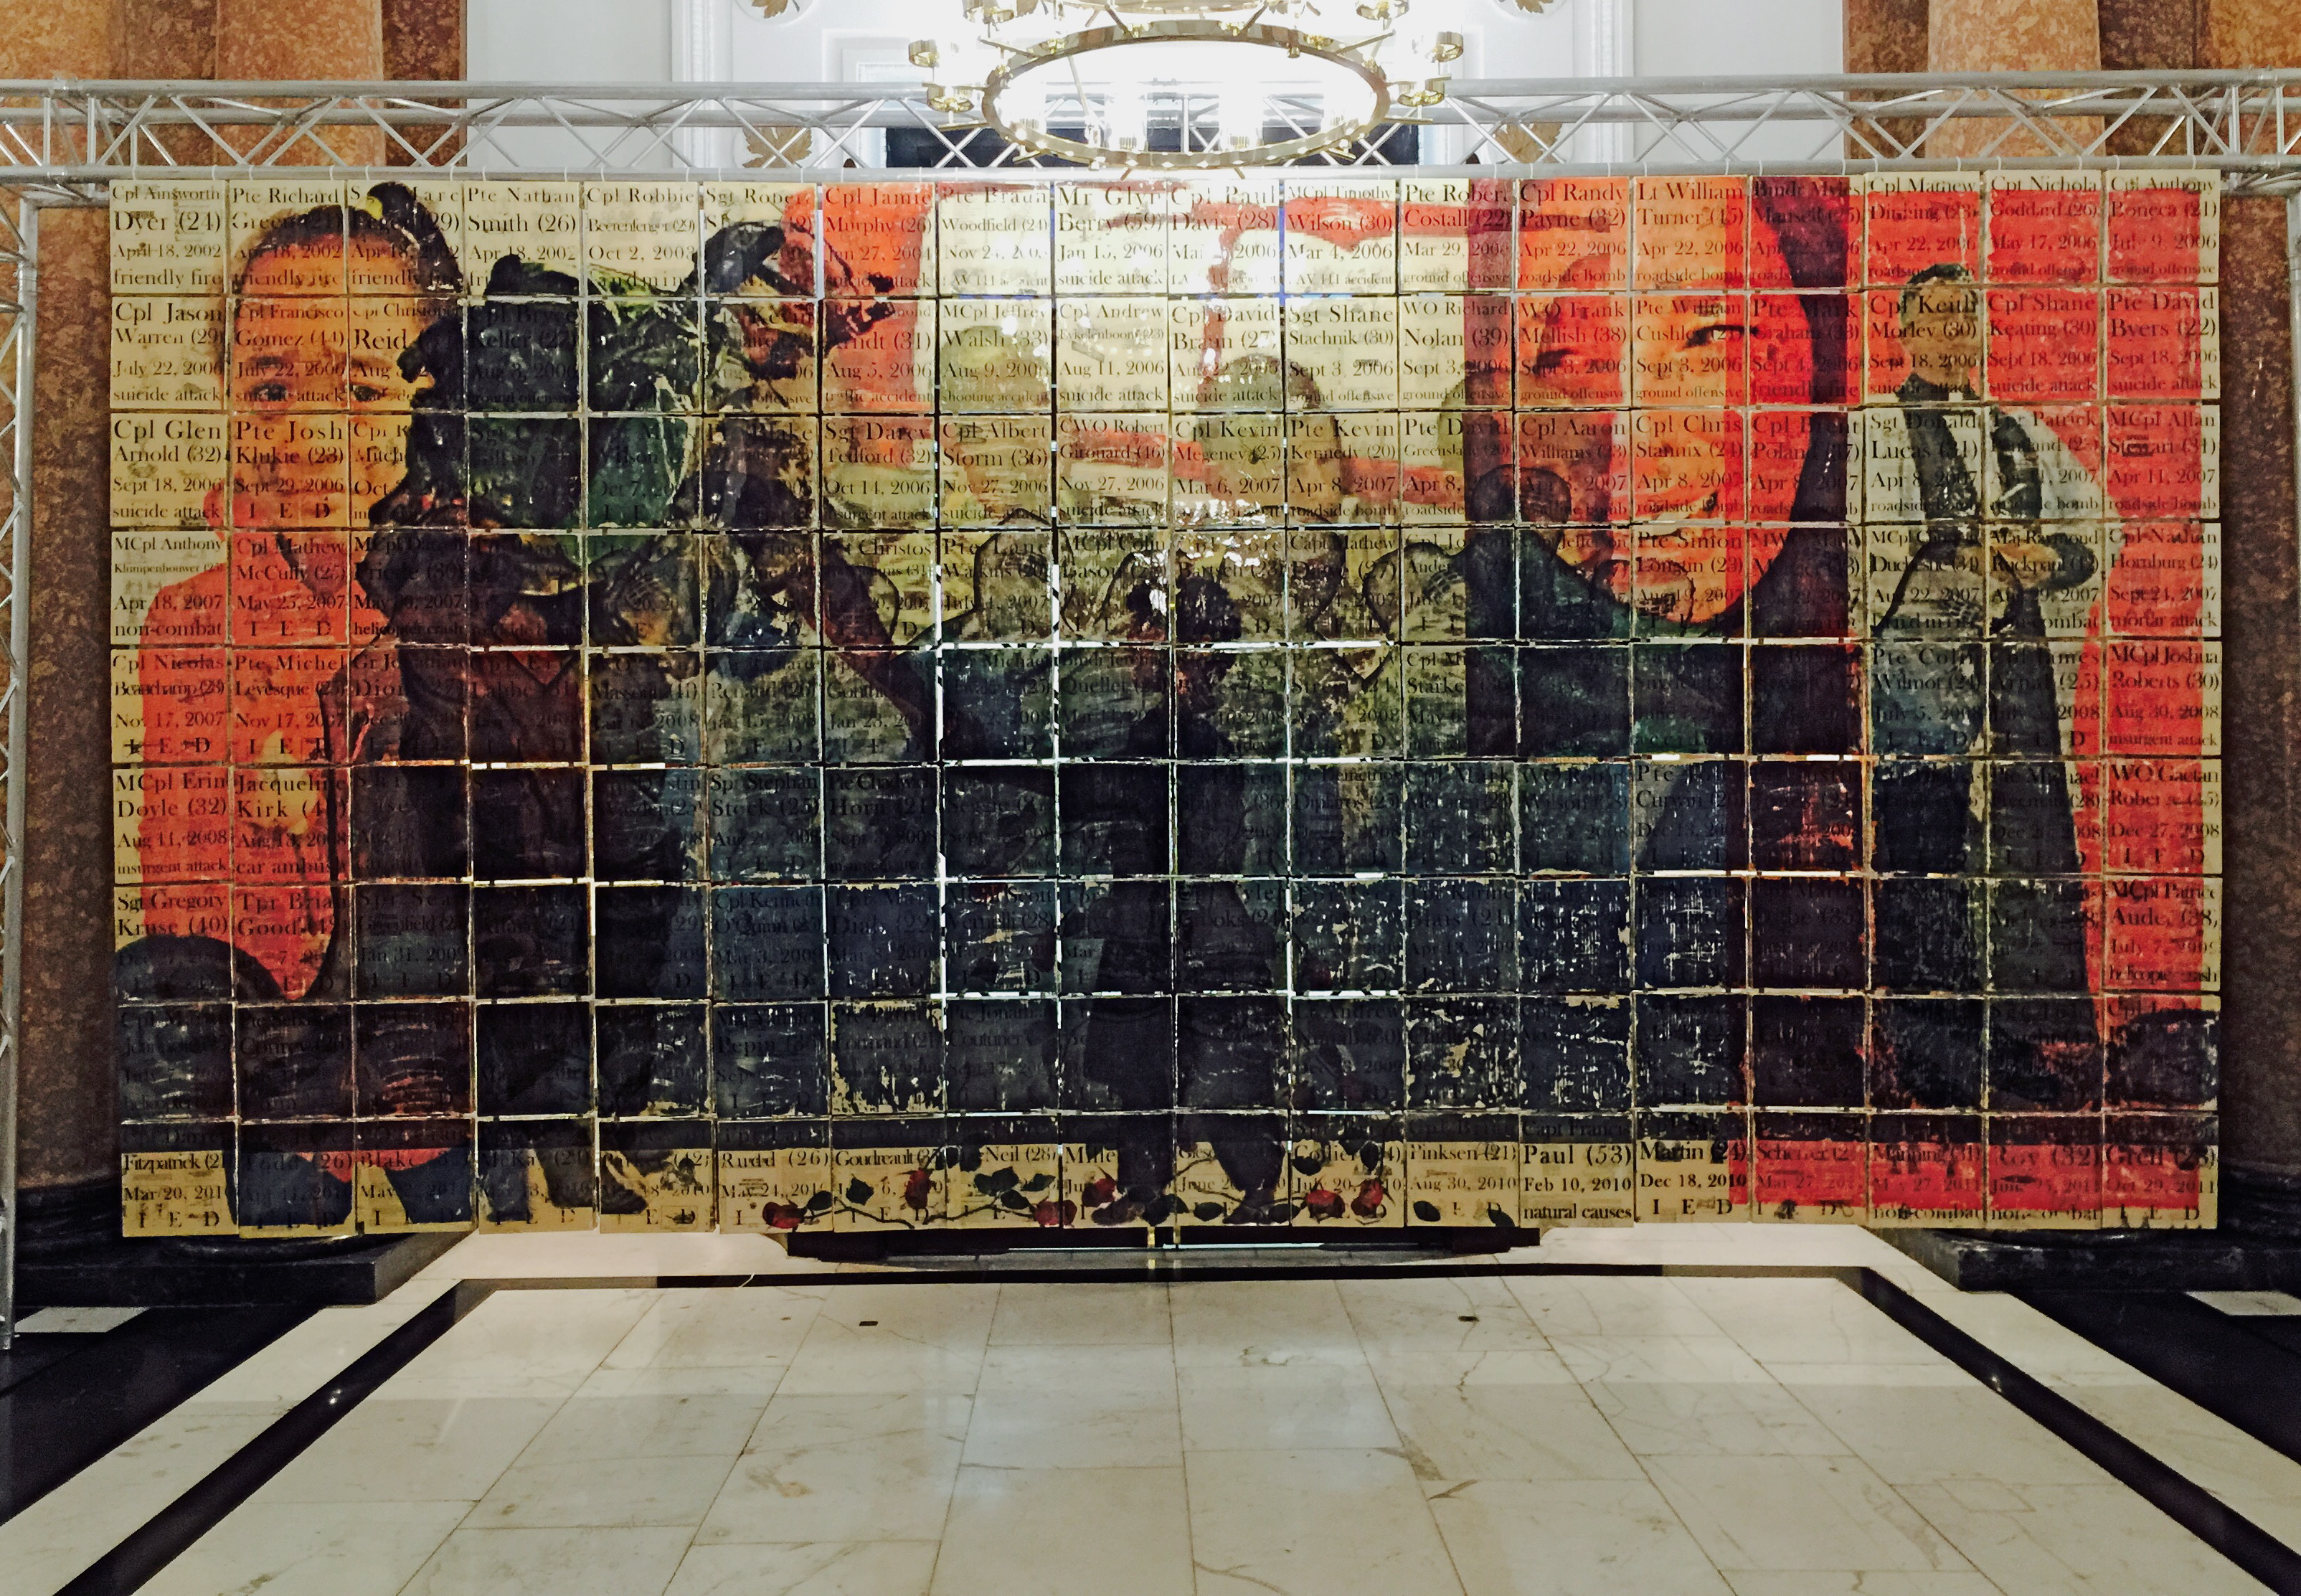 lestweforgetCANADA mural exhibit Canada House November 2015